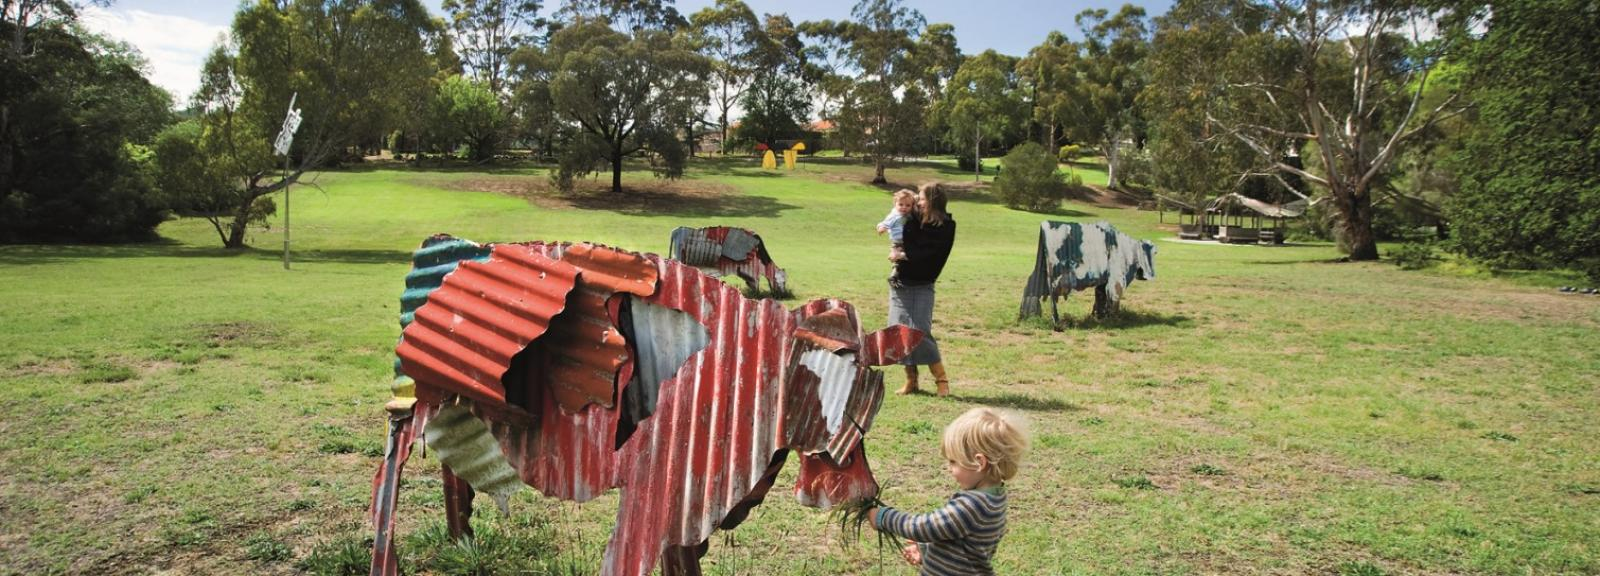 Jeff Thompson, Cows 1987, painted corrugated iron, Heide Museum of Modern Art, Photograph: John Gollings 2010, © the artist